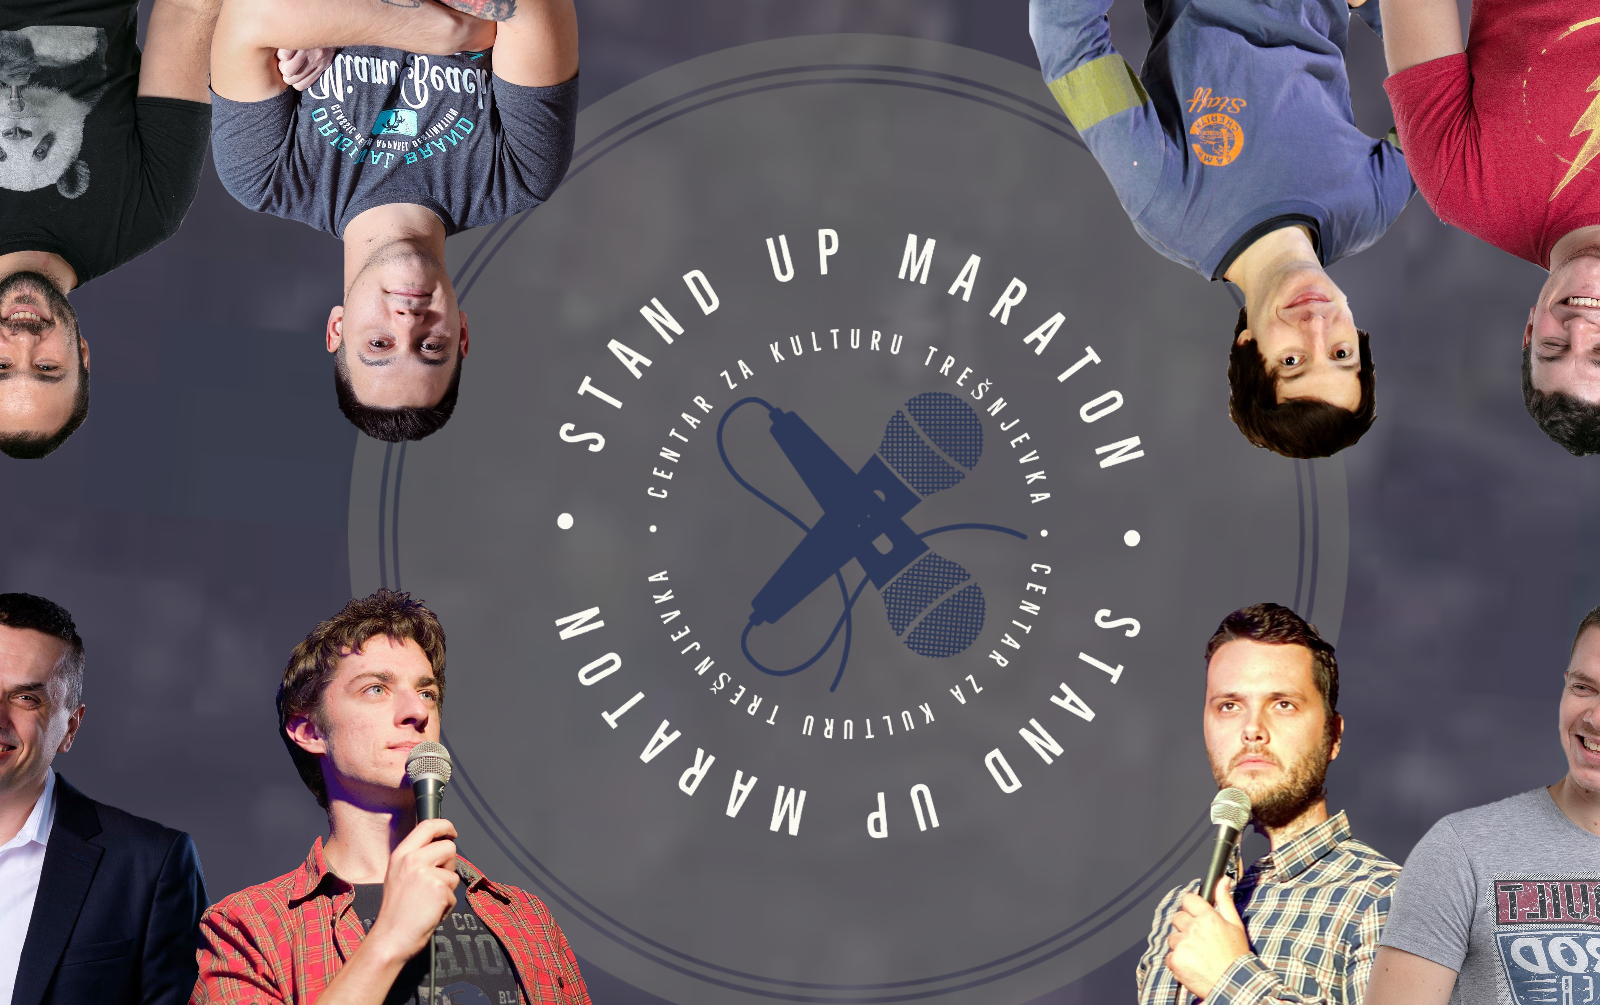 STAND UP MARATON (OPEN AIR)